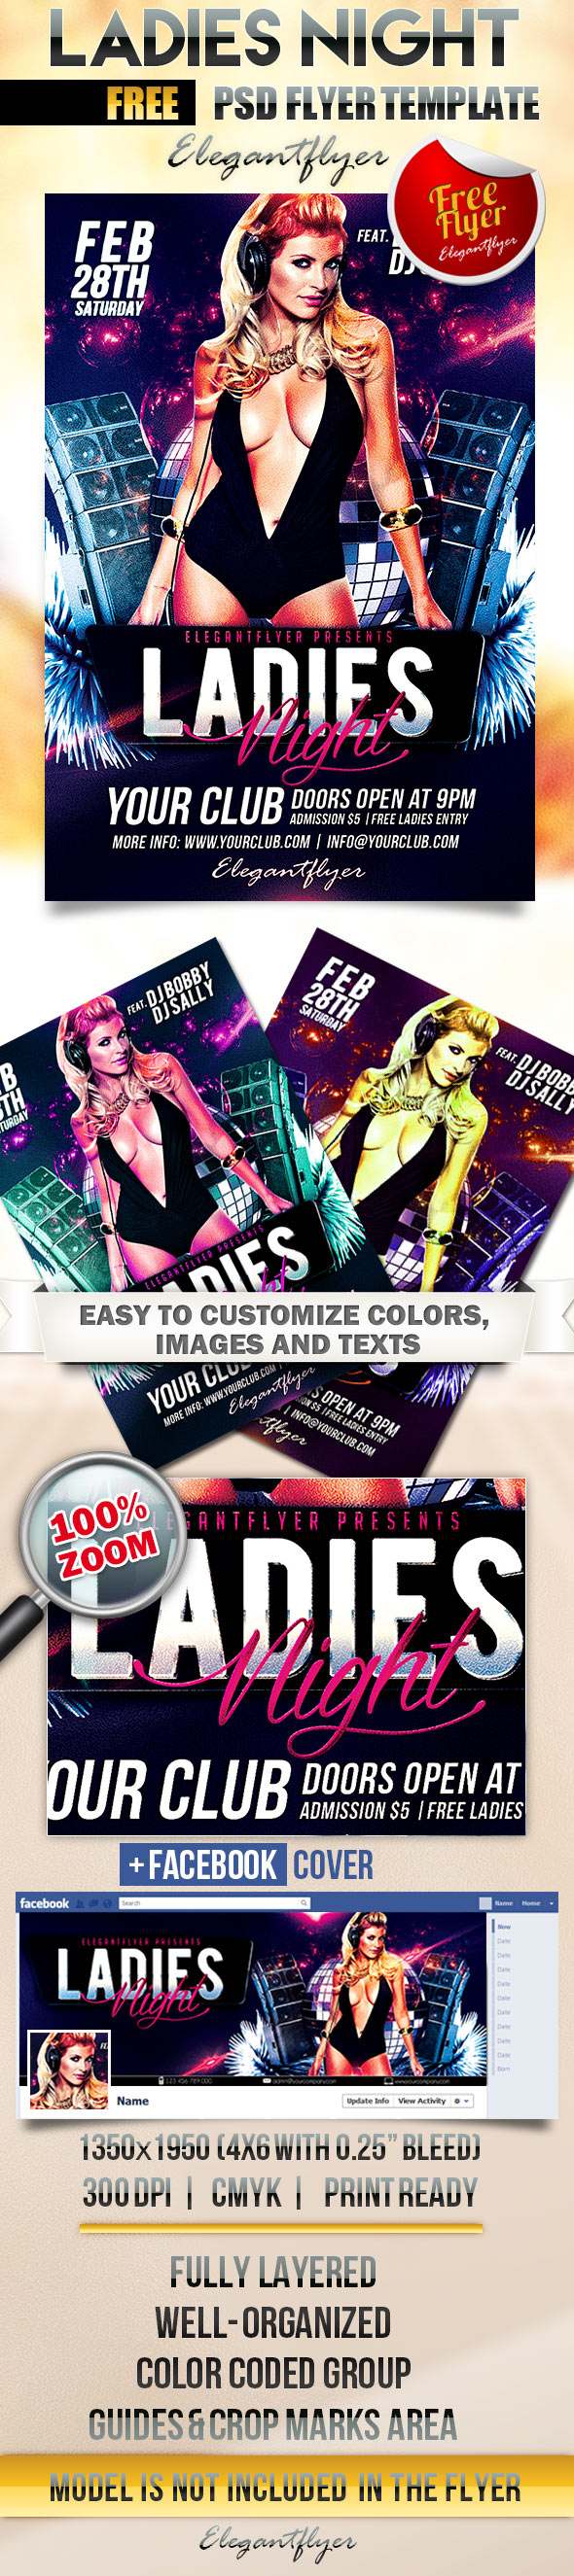 Ladies Night Flyer Template Free